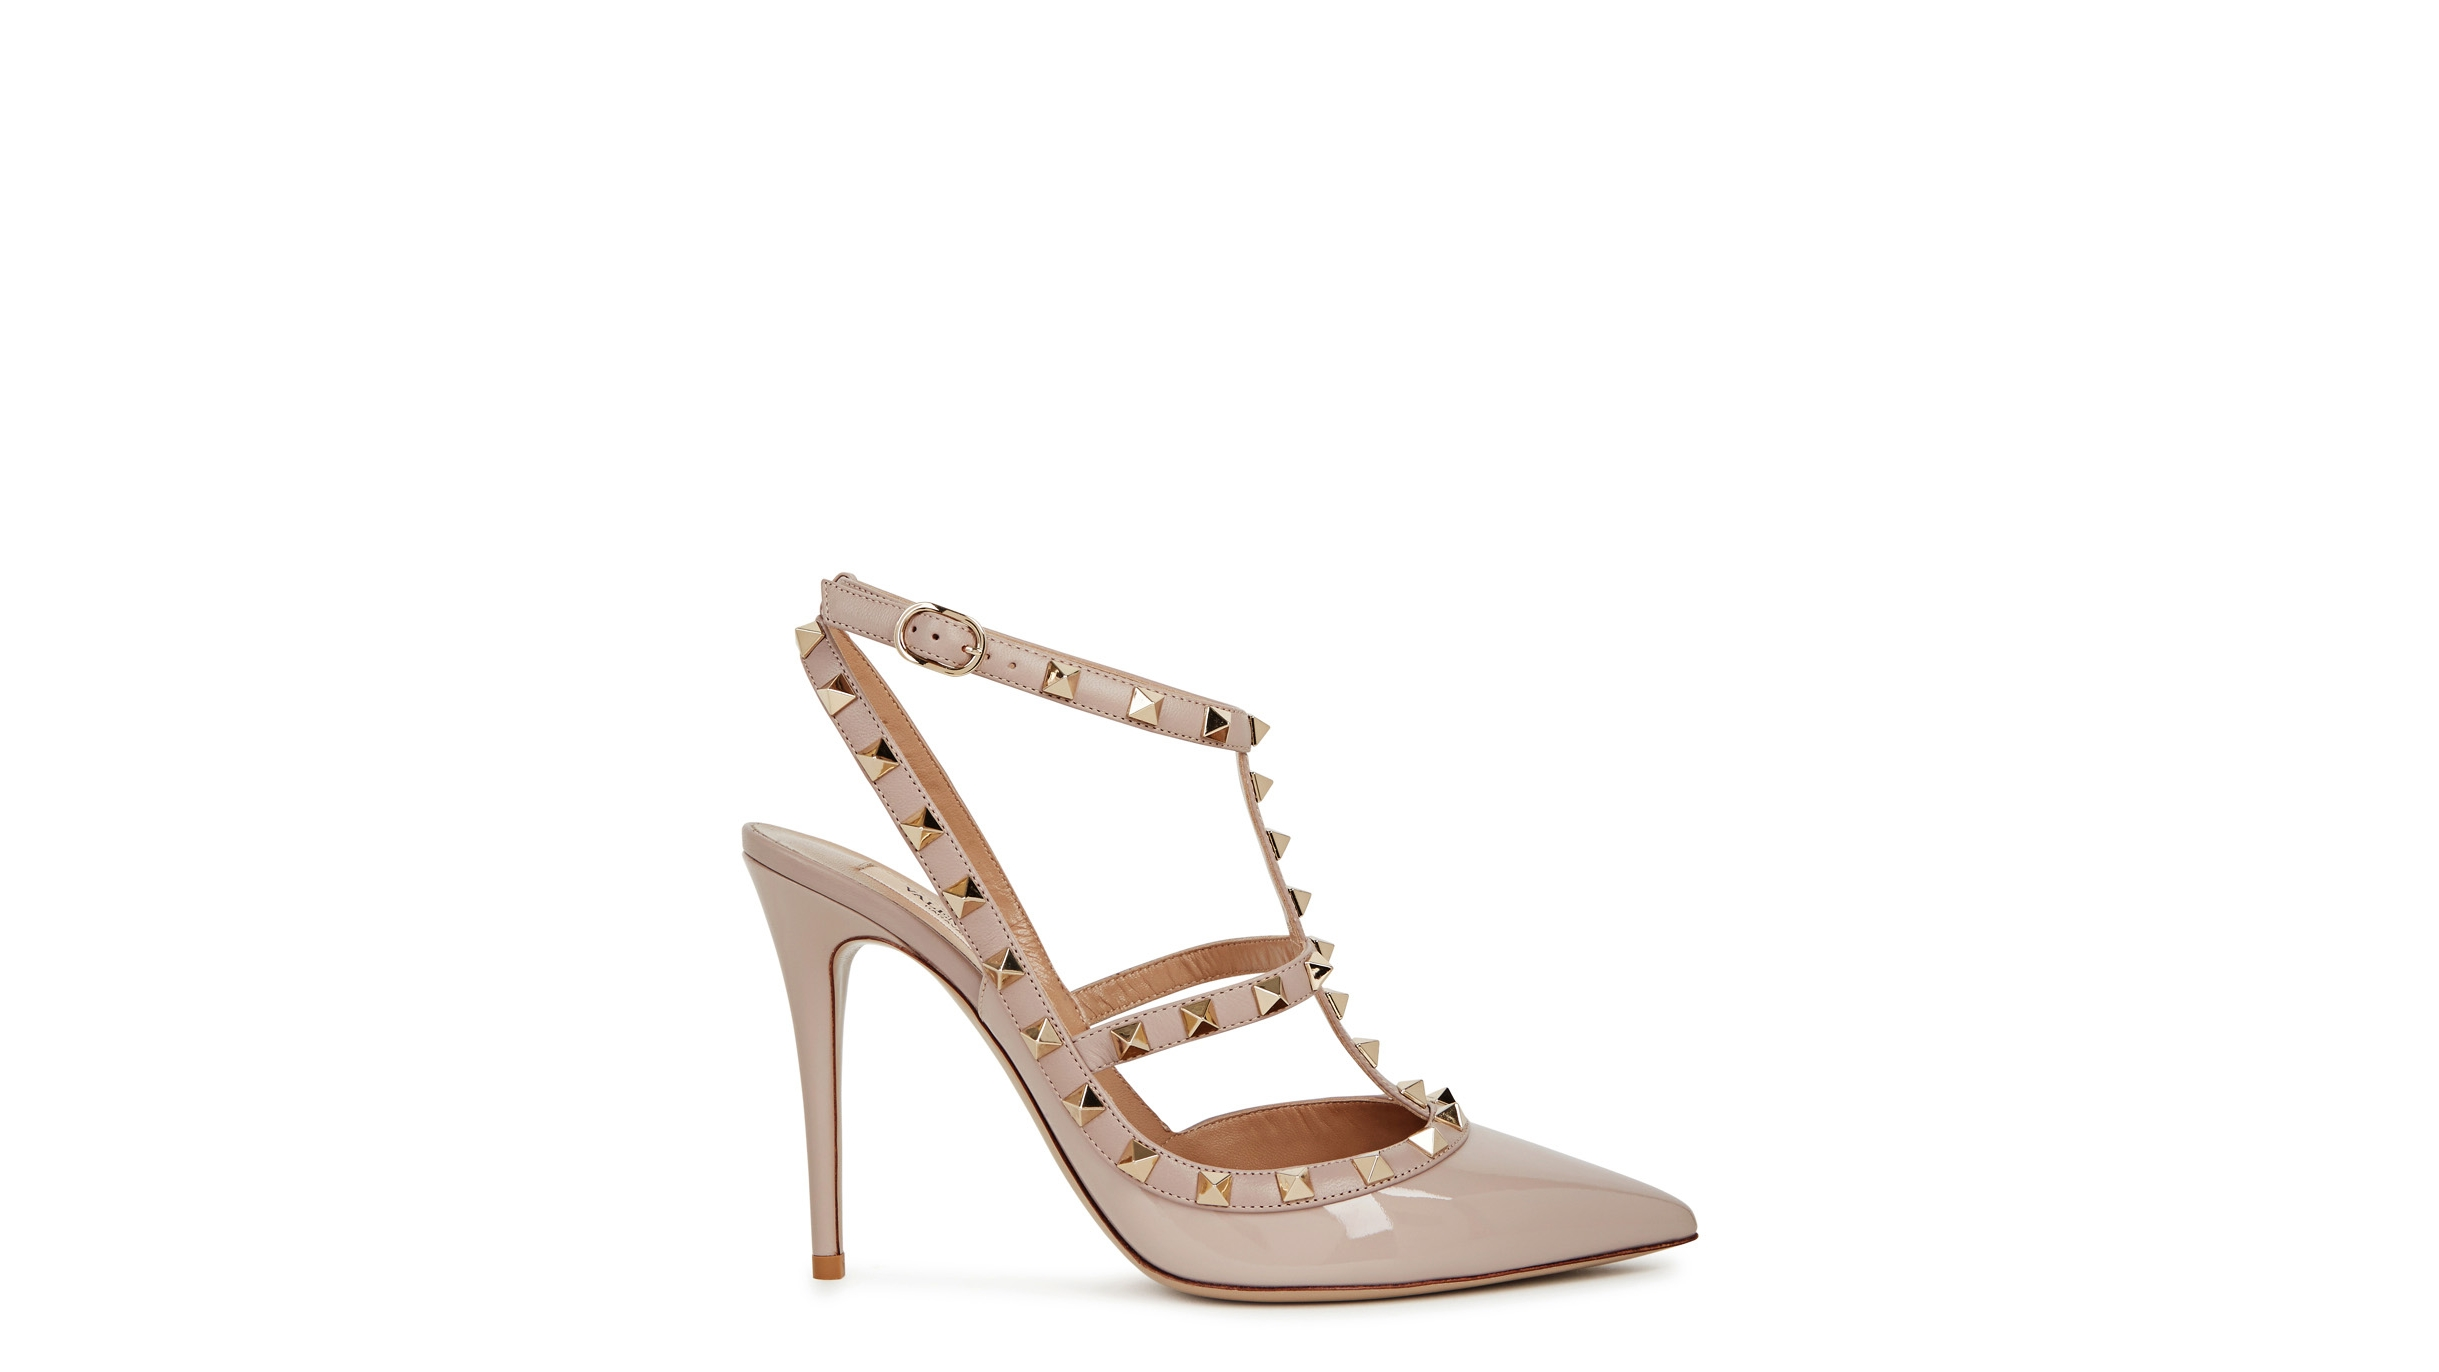 453ec6895a23 Valentino Garavani Rockstud 100 blush patent leather pumps - Harvey ...